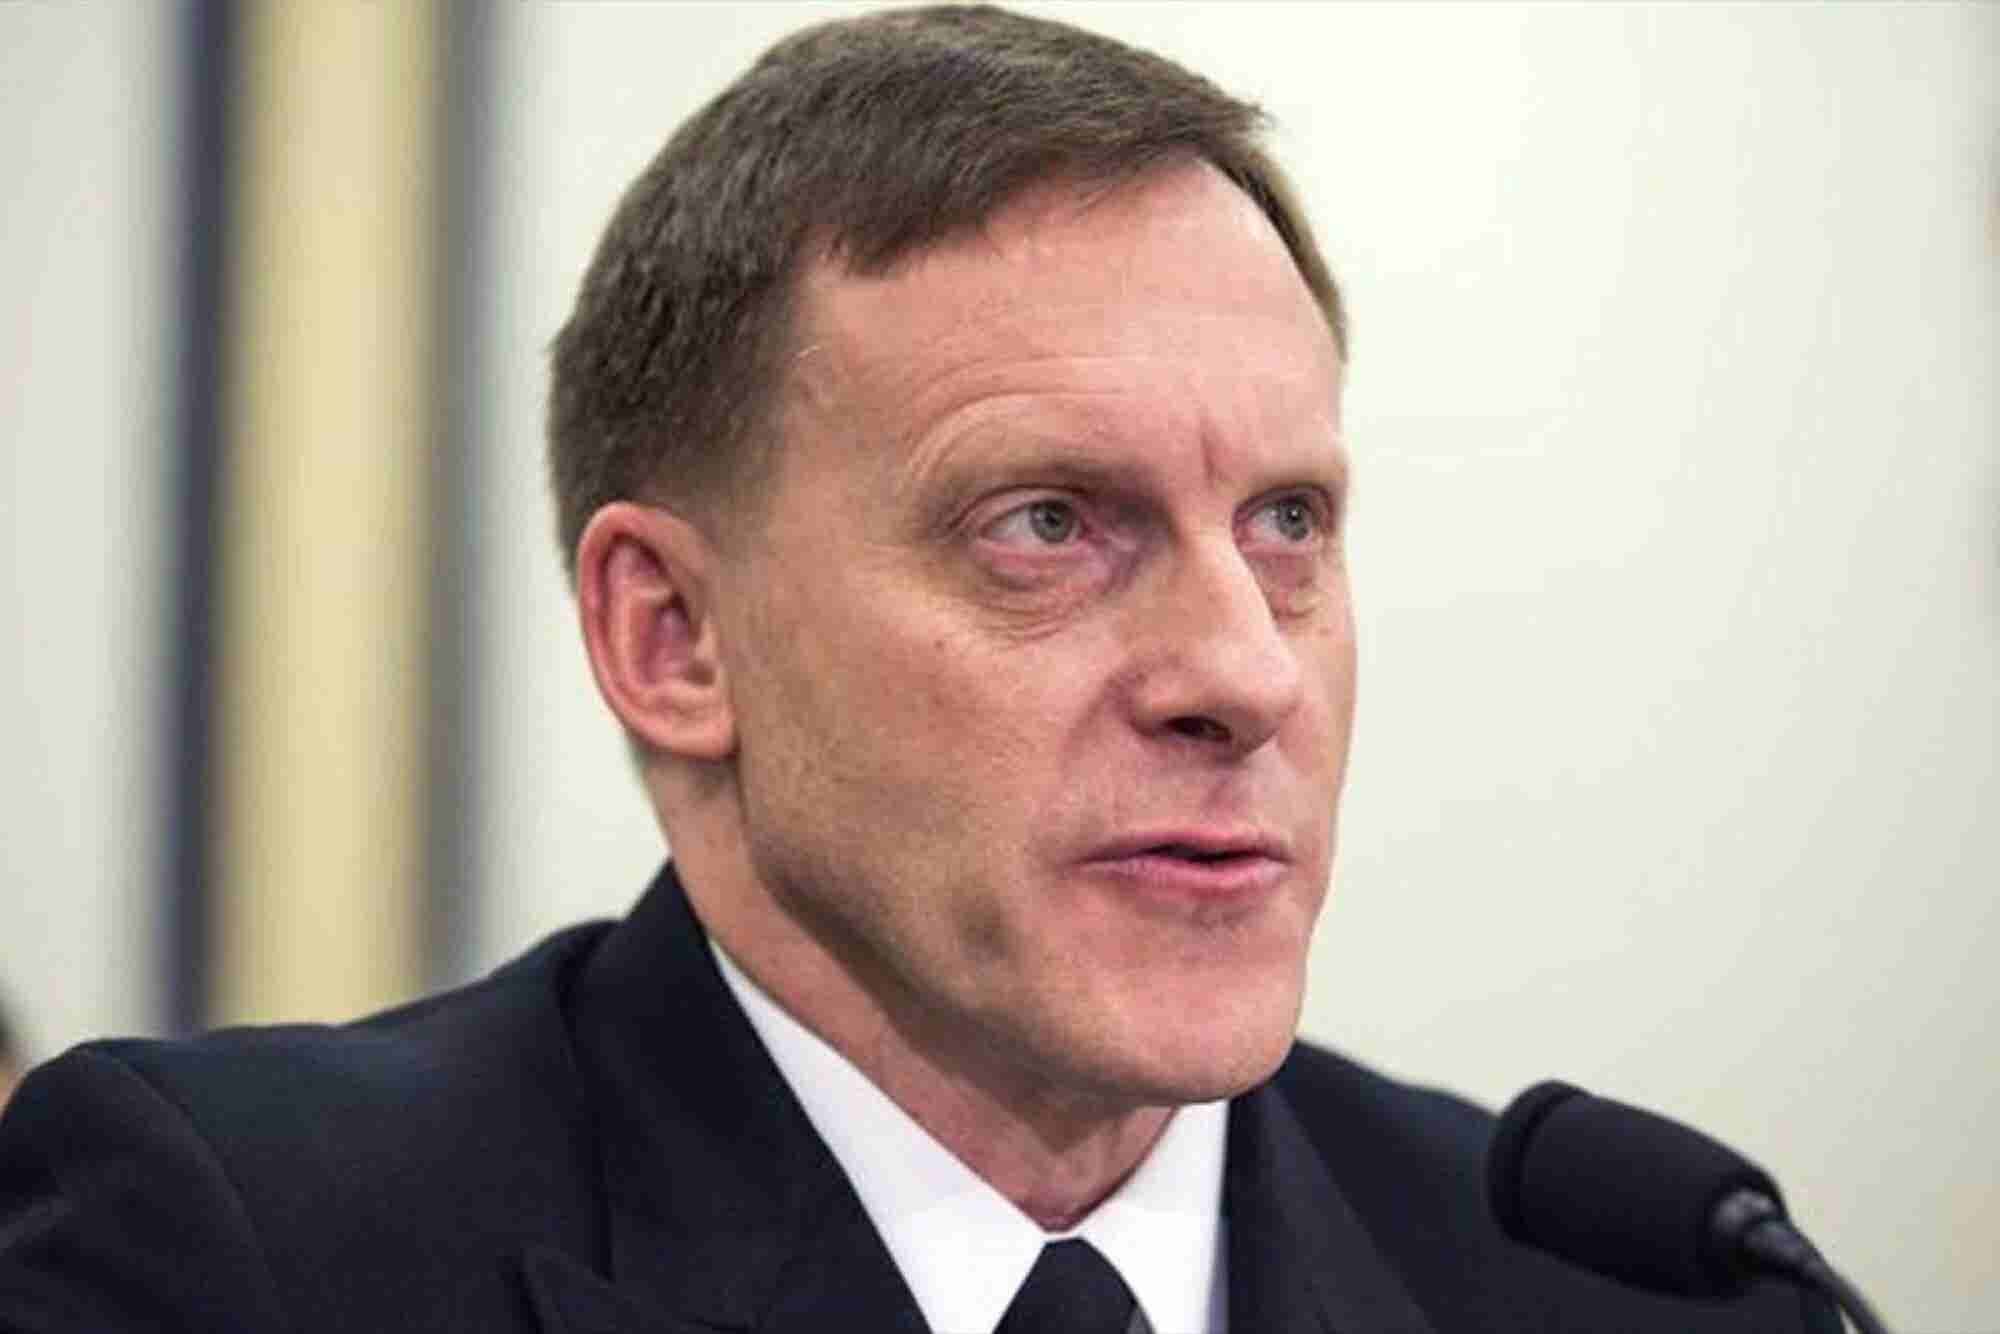 NSA Chief Warns Chinese Cyber Attacks Could Shut U.S. Infrastructure